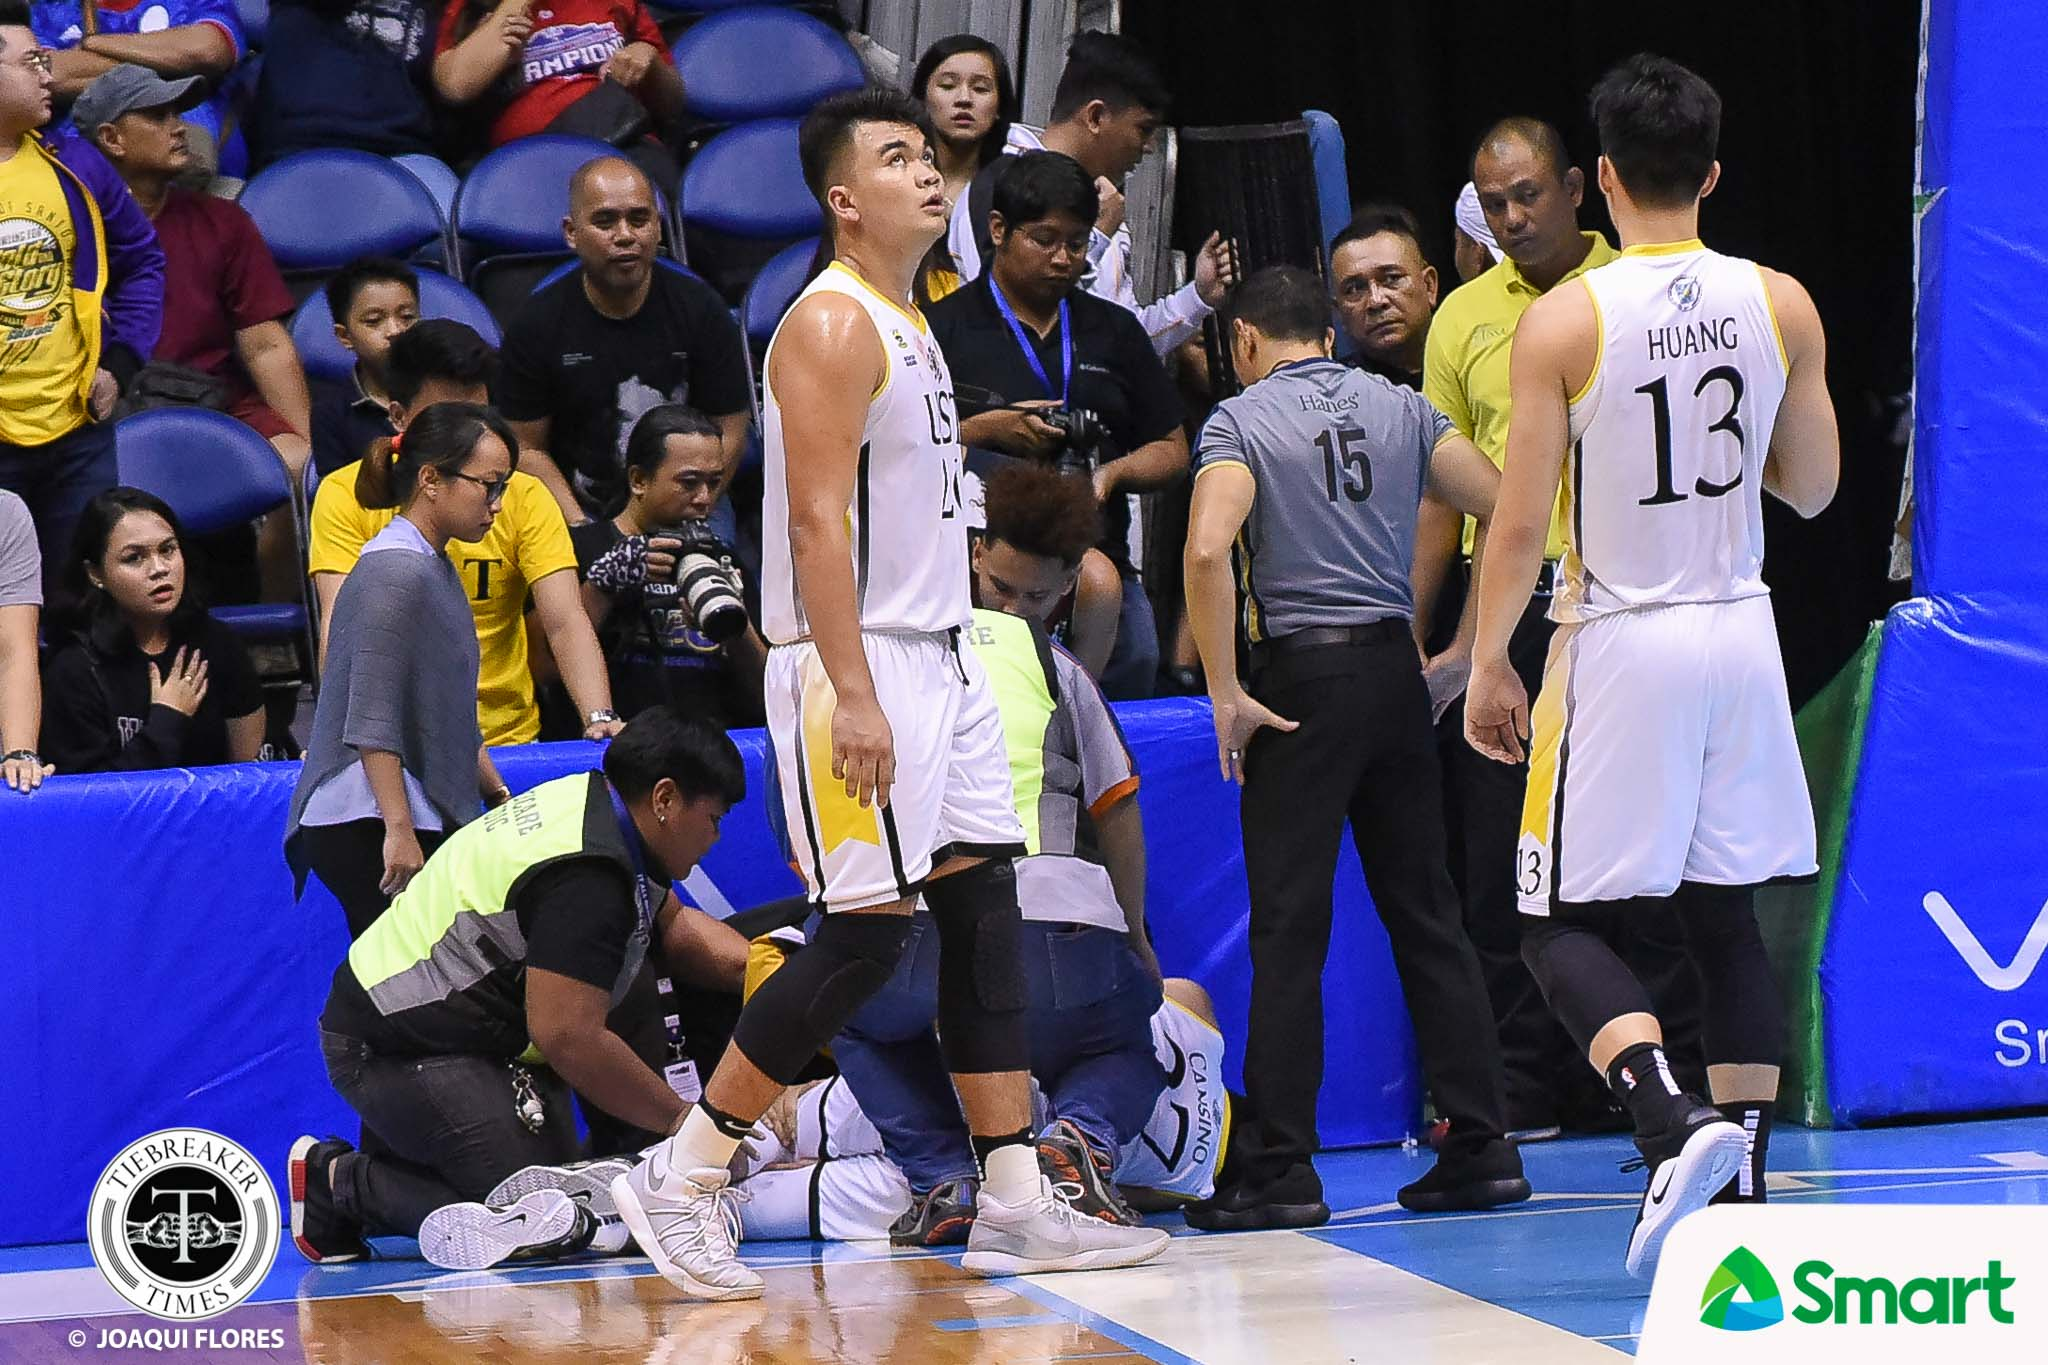 Tiebreaker Times Juan Gomez de Liano praying for fellow 'Ka-Better' CJ Cansino Basketball News UAAP UP UST  UST Men's Basketball UP Men's Basketball UAAP Season 81 Men's Basketball UAAP Season 81 Juan Gomez De Liano CJ Cansino